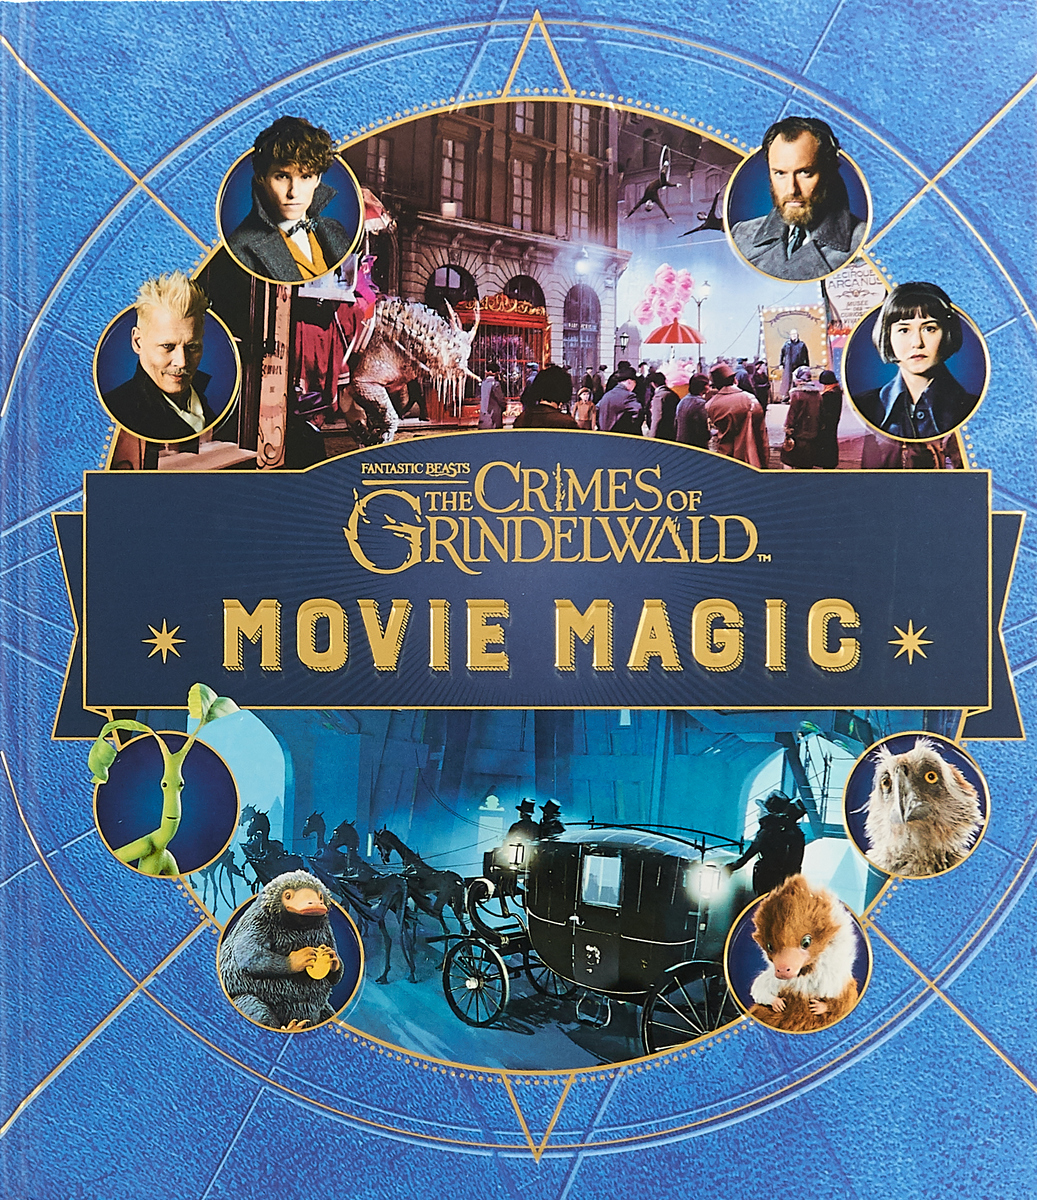 Fantastic Beasts: The Crimes of Grindelw fantastic beasts and where to find them magical movie handbook